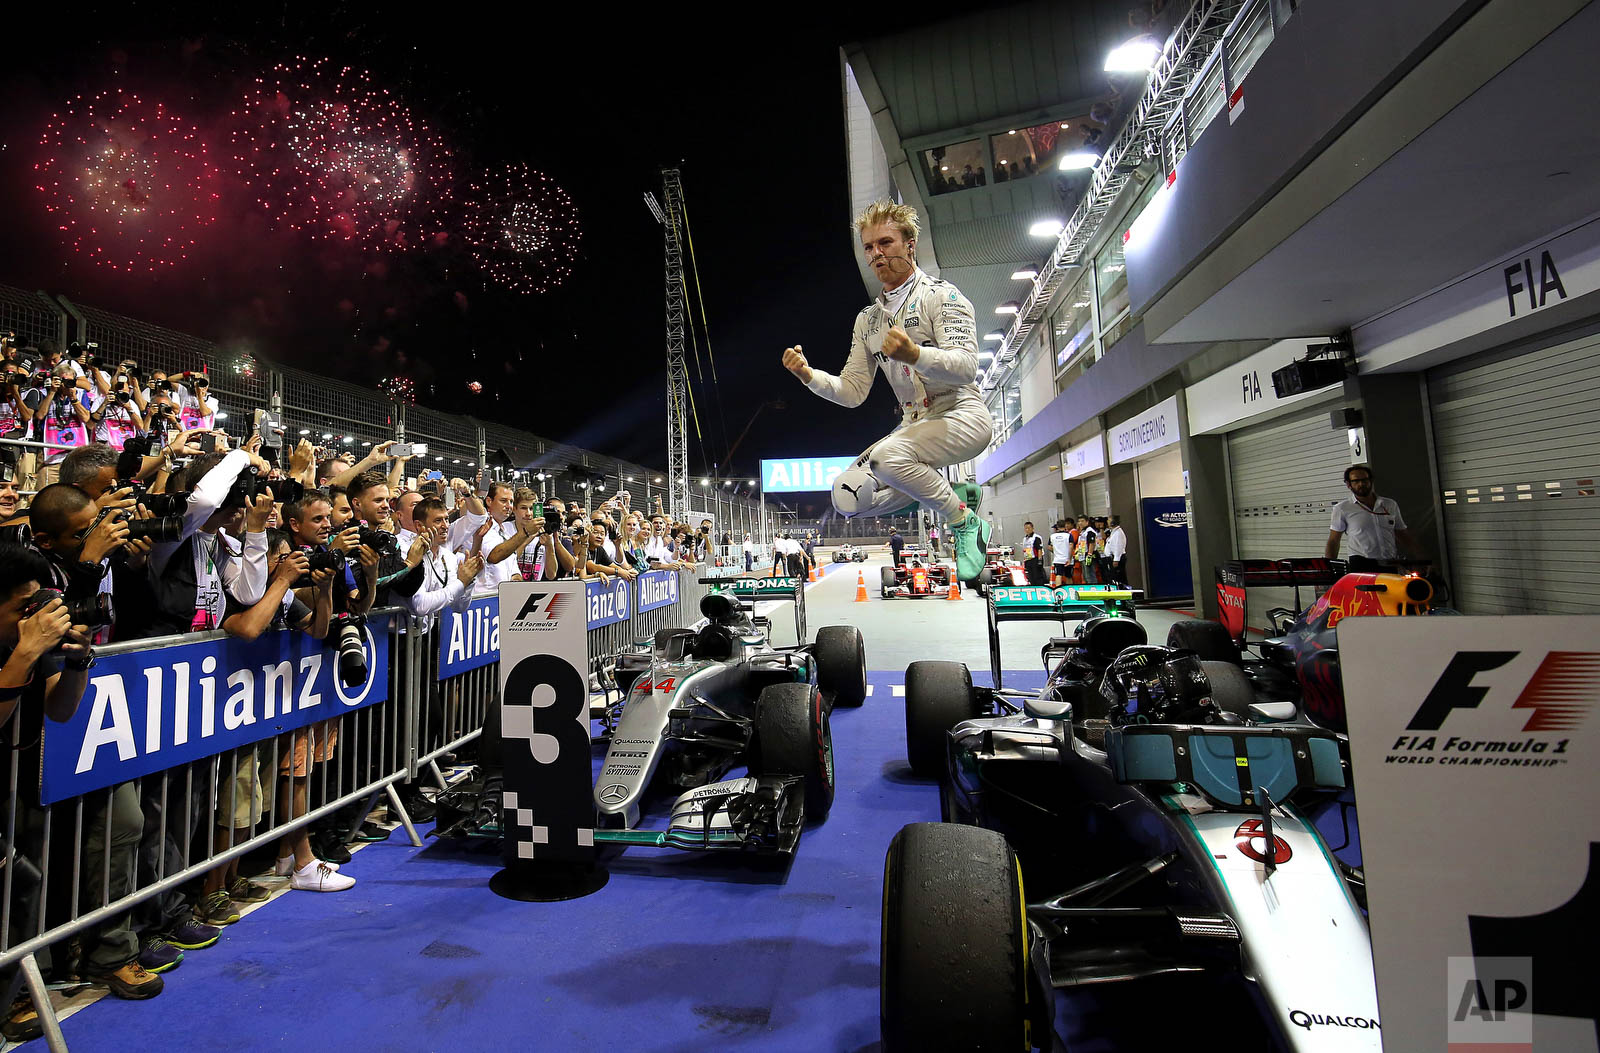 Mercedes driver Nico Rosberg of Germany jumps off his car as he celebrates after winning the Singapore Formula One Grand Prix on the Marina Bay City Circuit Singapore, Sunday, Sept. 18, 2016. (AP Photo/Yong Teck Lim)